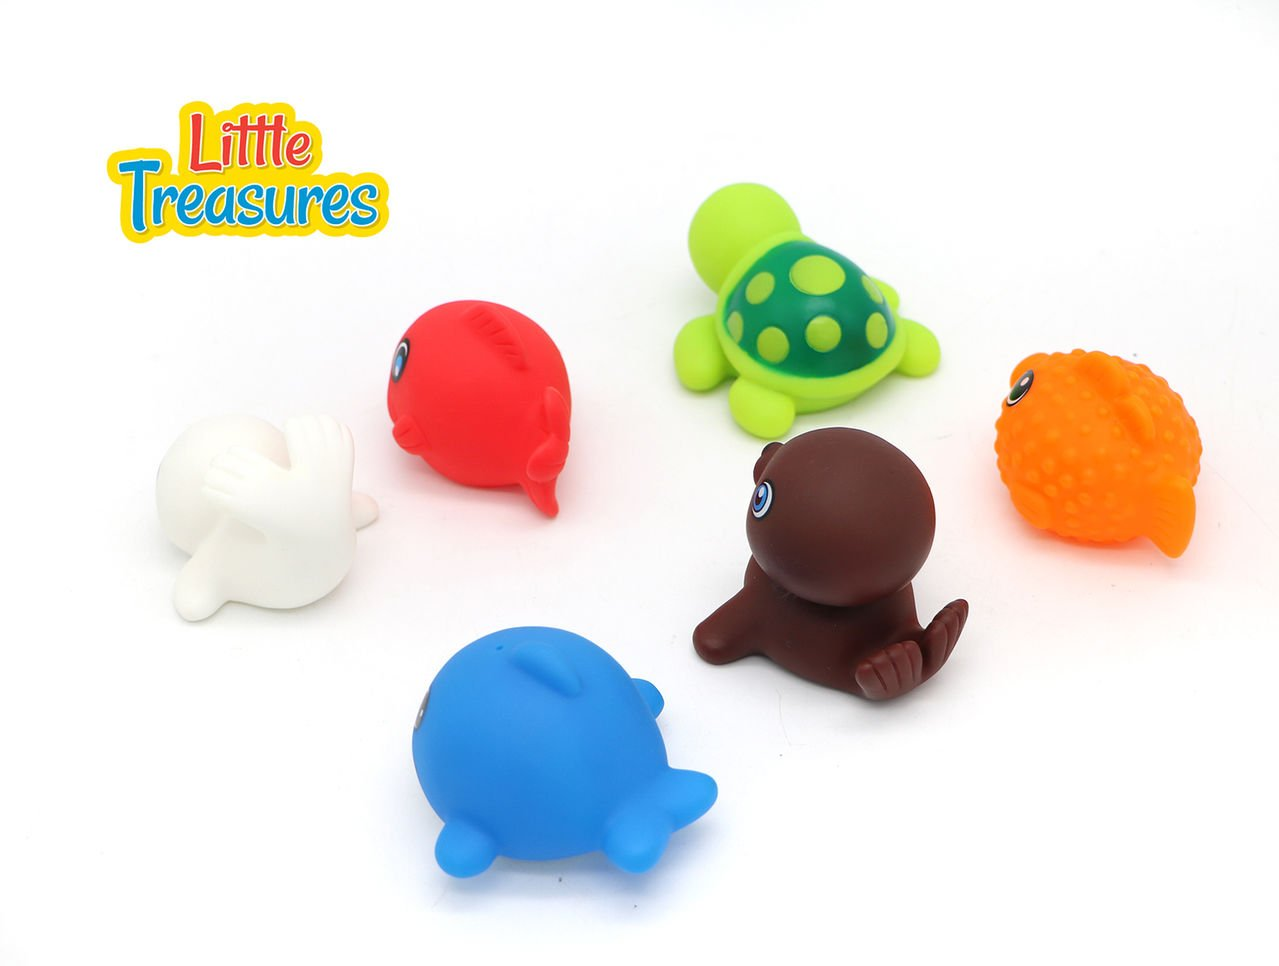 Turtle and More Animals from The Sea 328118 Little Treasures Floating Toy Animal Friend for Children/'s Bathtub Playtime Pack of 6 pc Bring Home a Loveable Seal Sea Lion